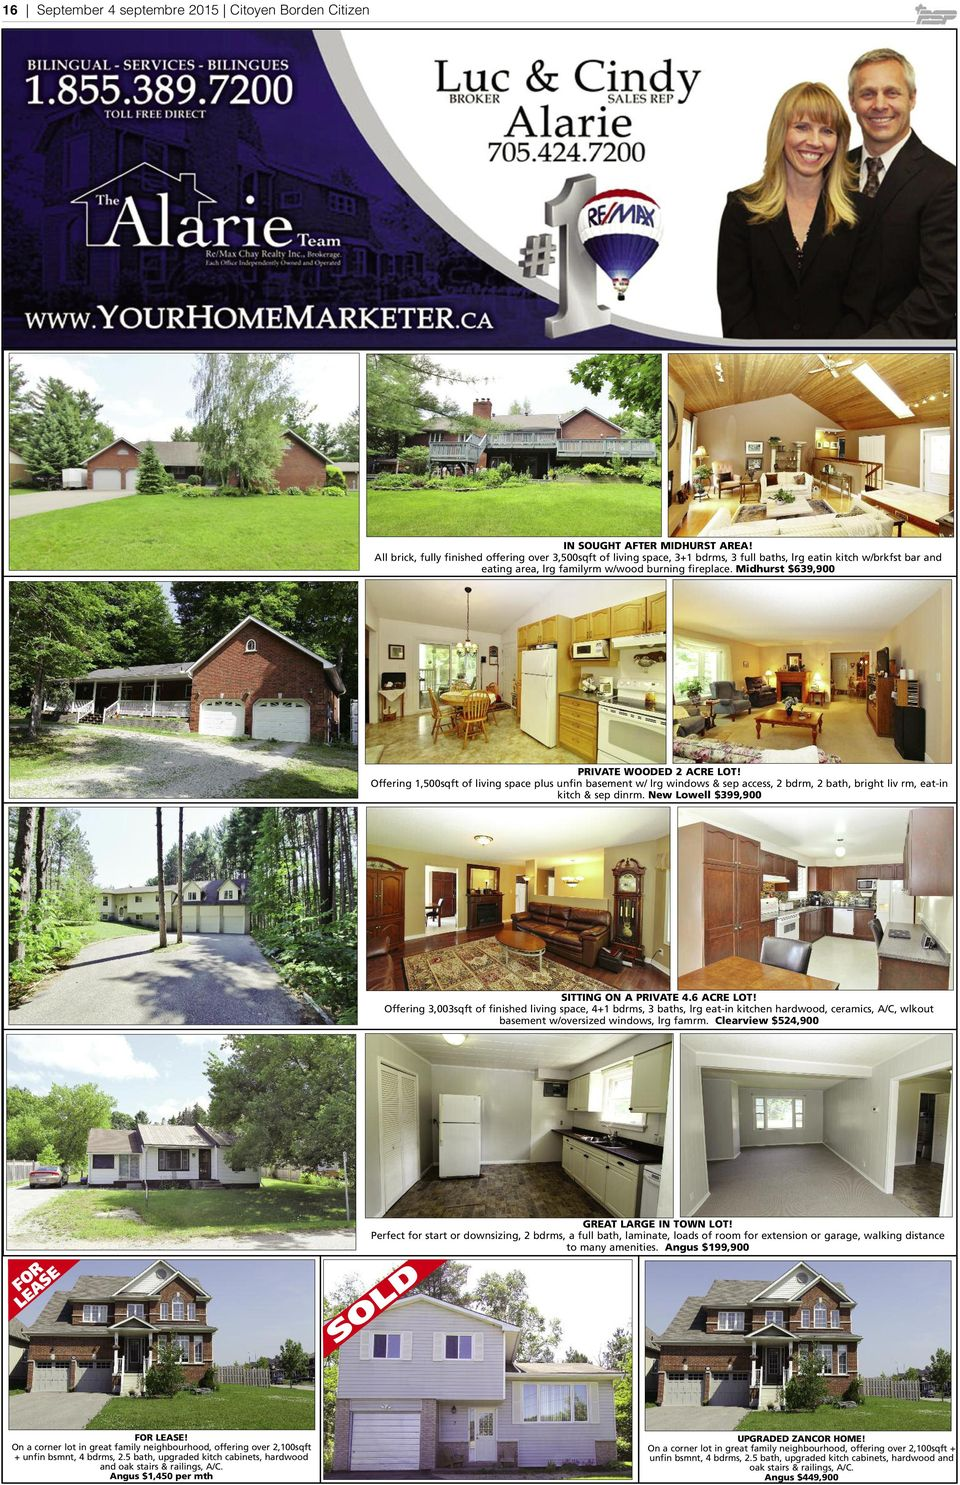 Midhurst $639,900 PRIVATE WOODED 2 ACRE LOT! Offering 1,500sqft of living space plus unfin basement w/ lrg windows & sep access, 2 bdrm, 2 bath, bright liv rm, eat-in kitch & sep dinrm.